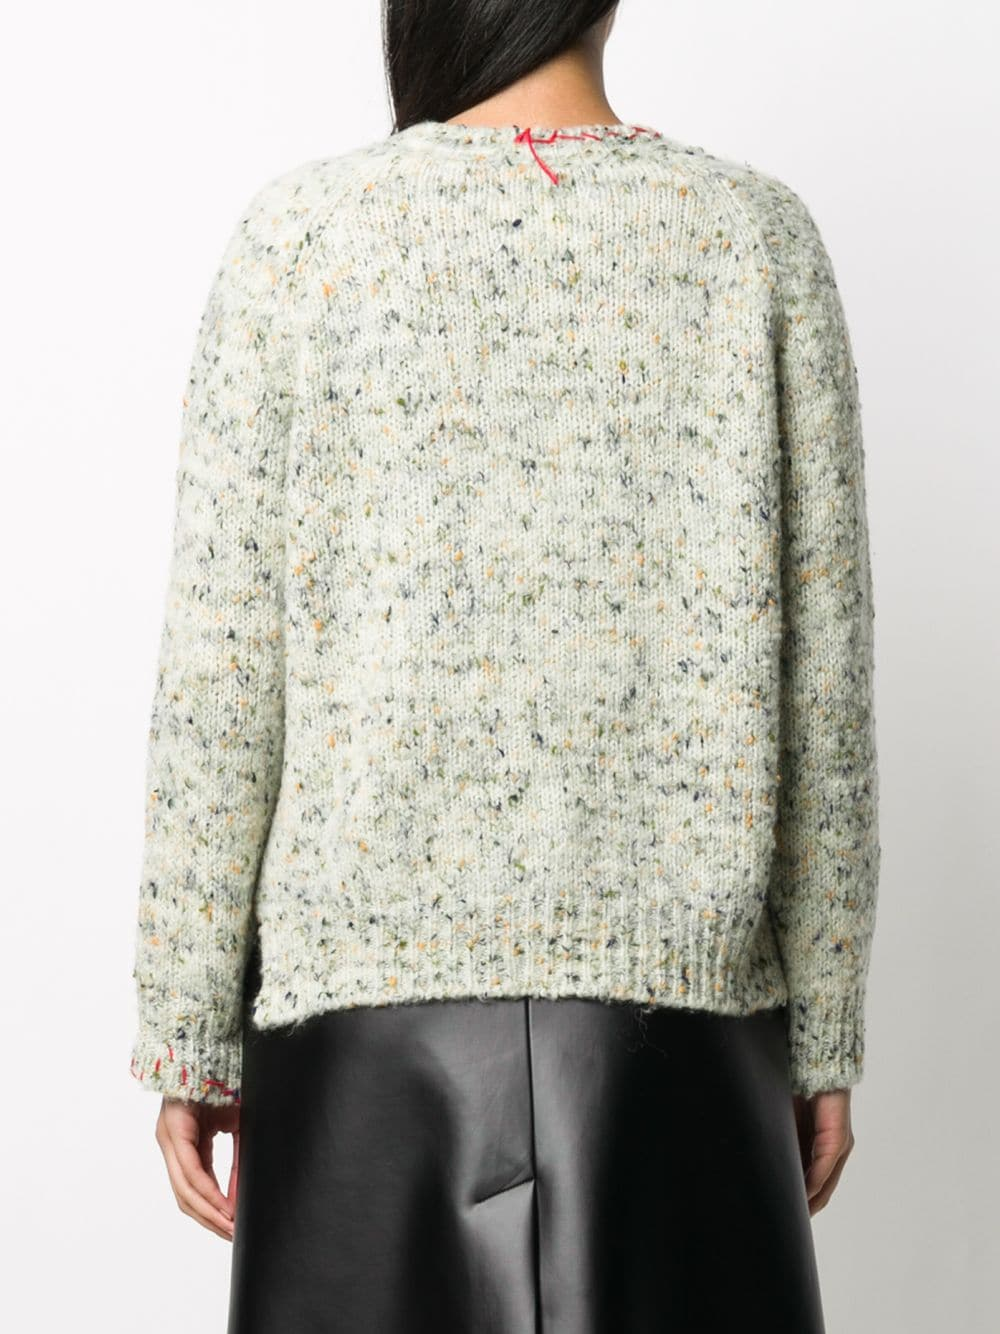 MAISON MARGIELA WOMEN UNTREATED WOOL SWEATER